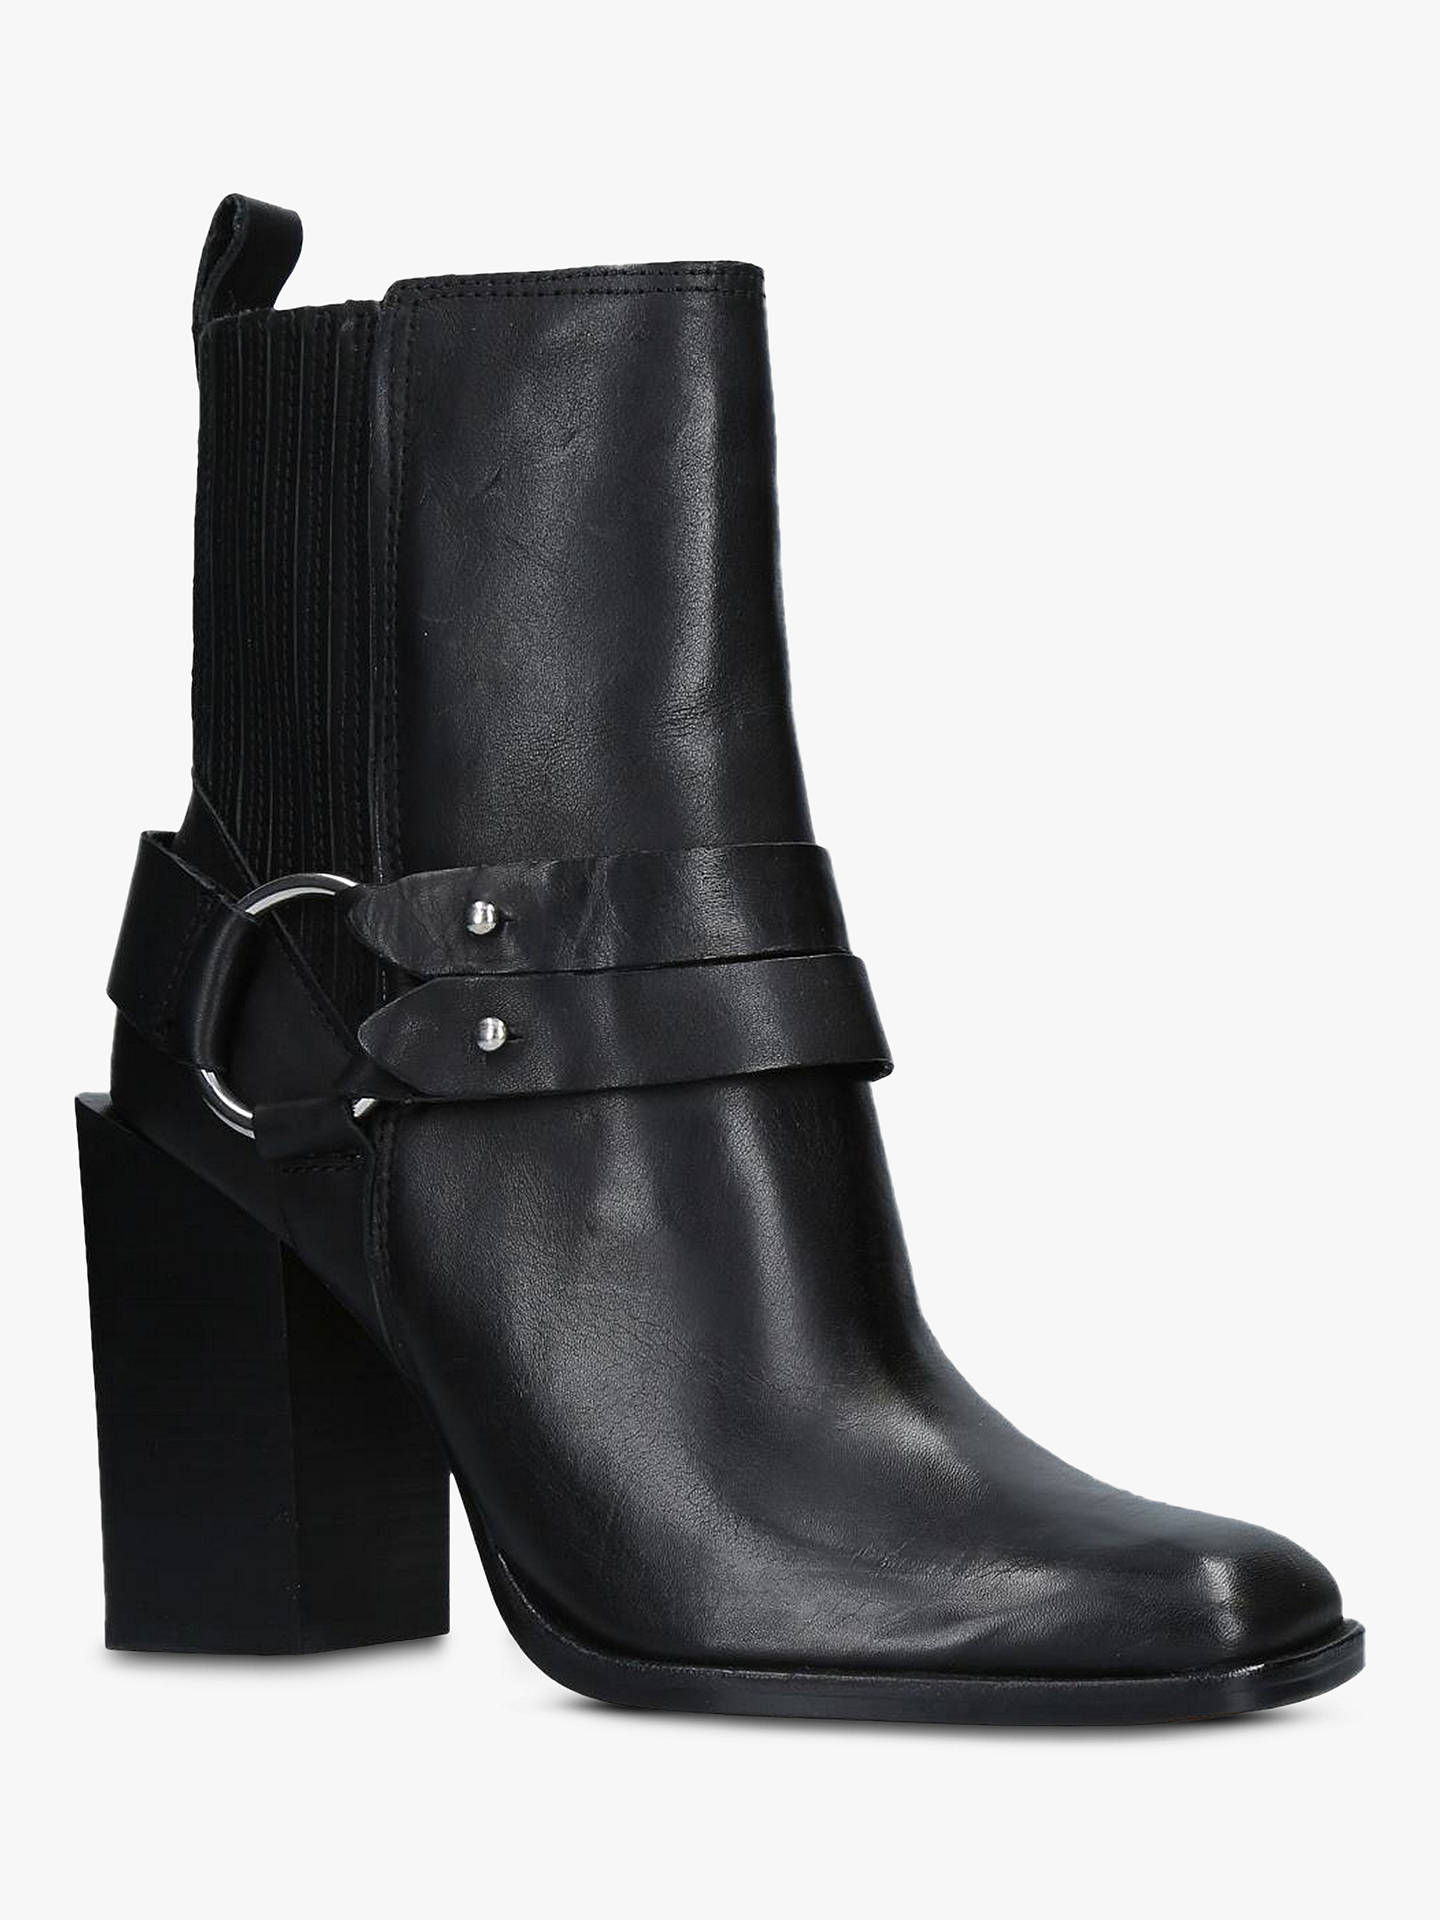 61d888df6eb2e Buy Dolce Vita Isara Block Heel Ankle Boots, Black Leather, 3.5 Online at  johnlewis ...